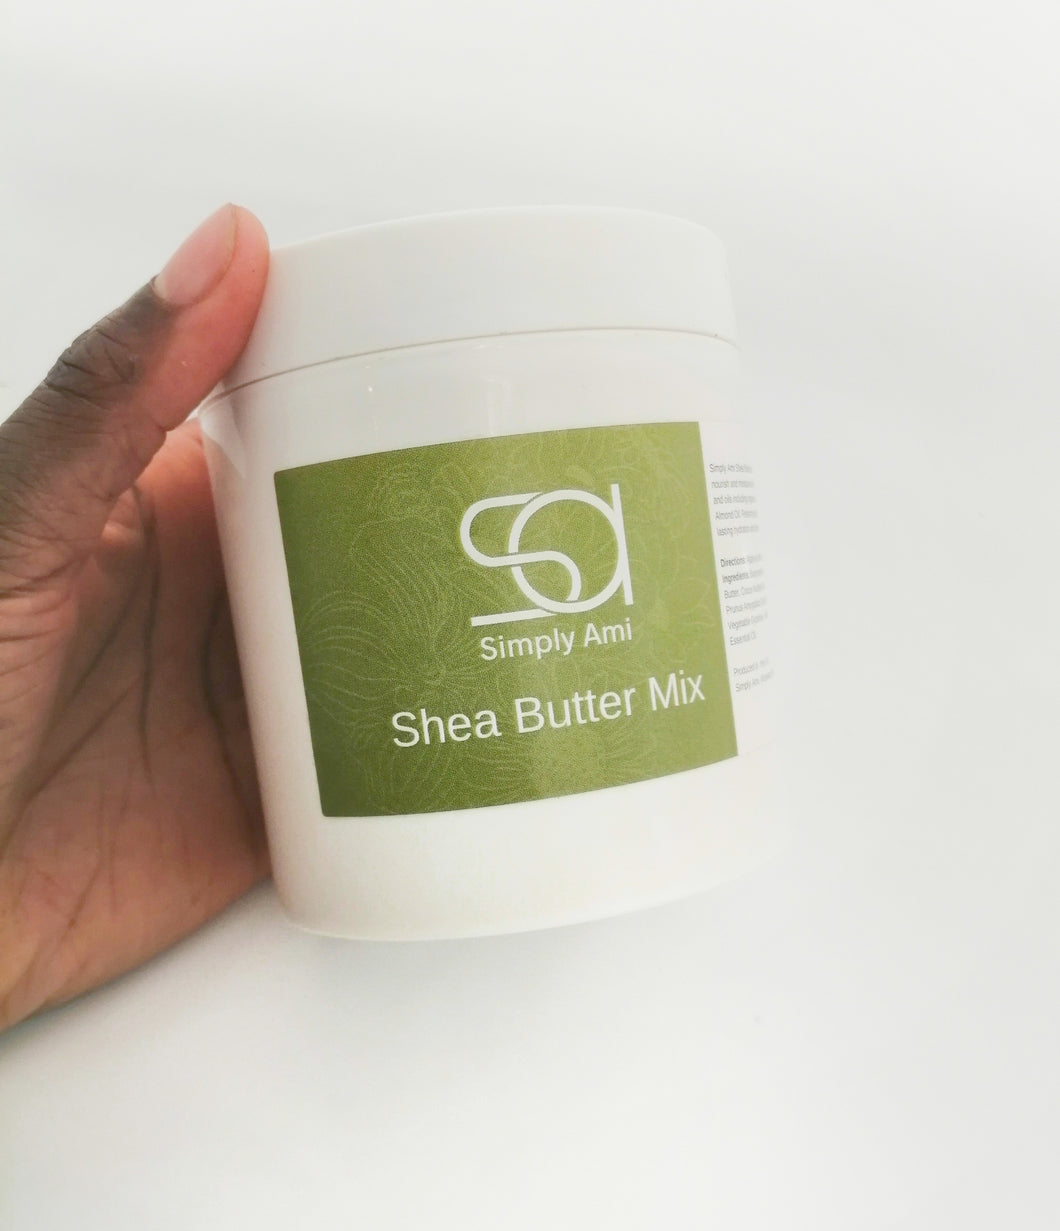 Simply Ami Shea Butter Mix, Family Size